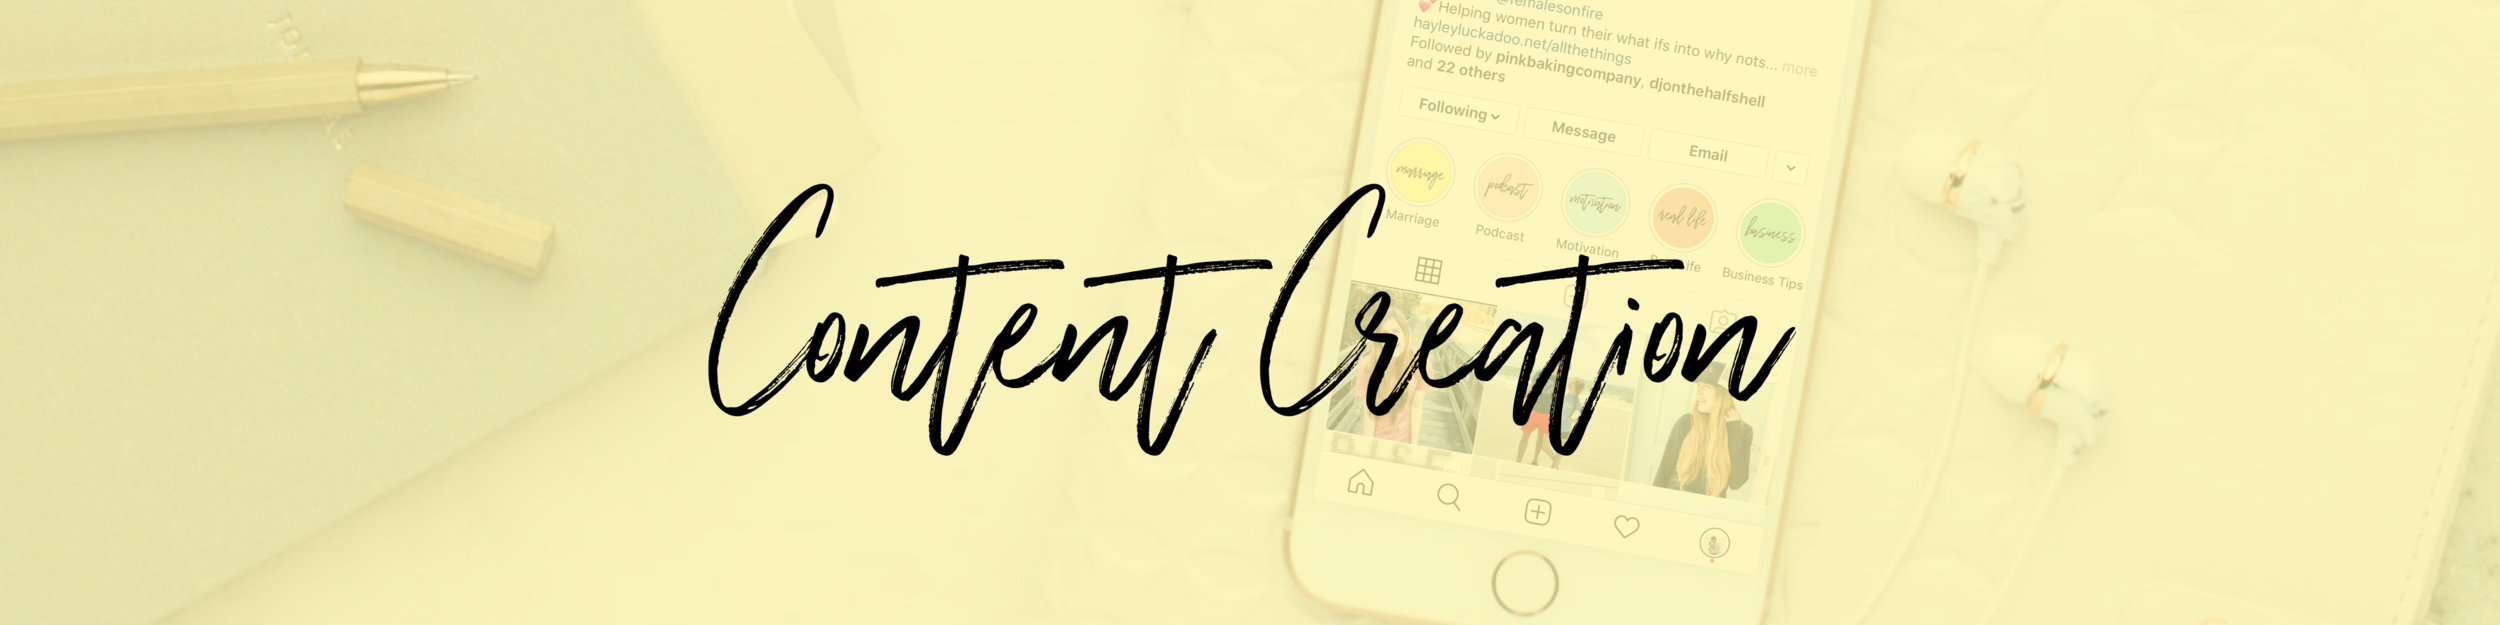 LMC Content Creation Services